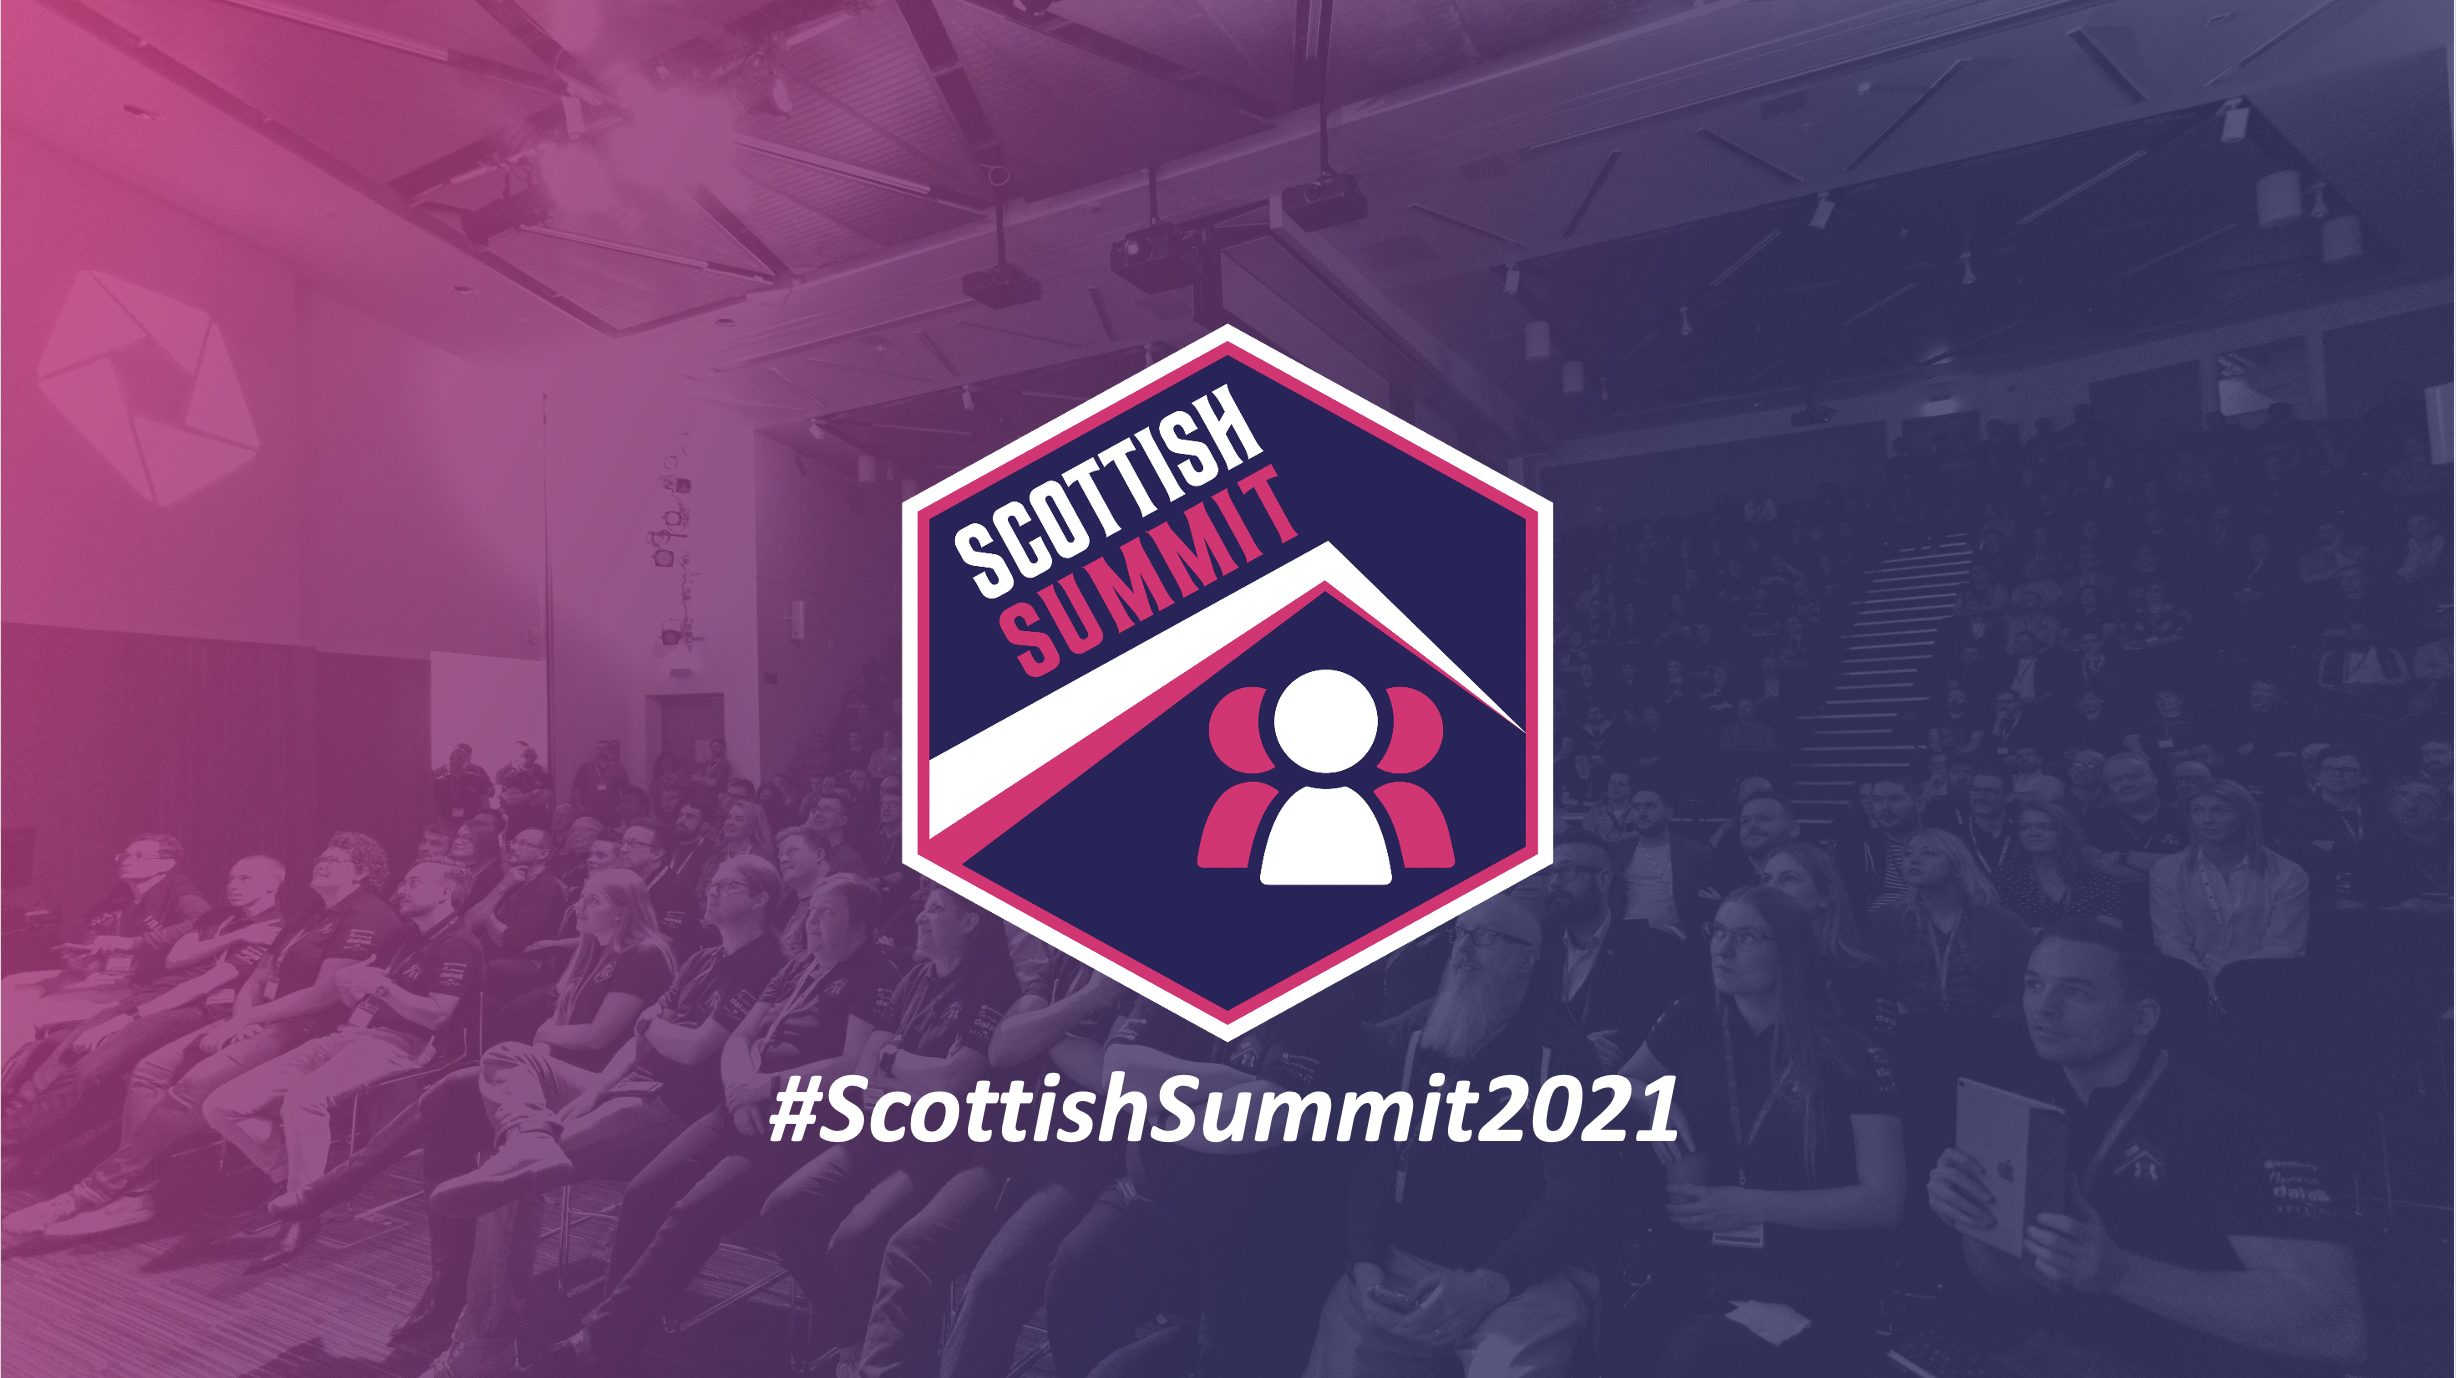 Scottish Summit 2021 Axazure